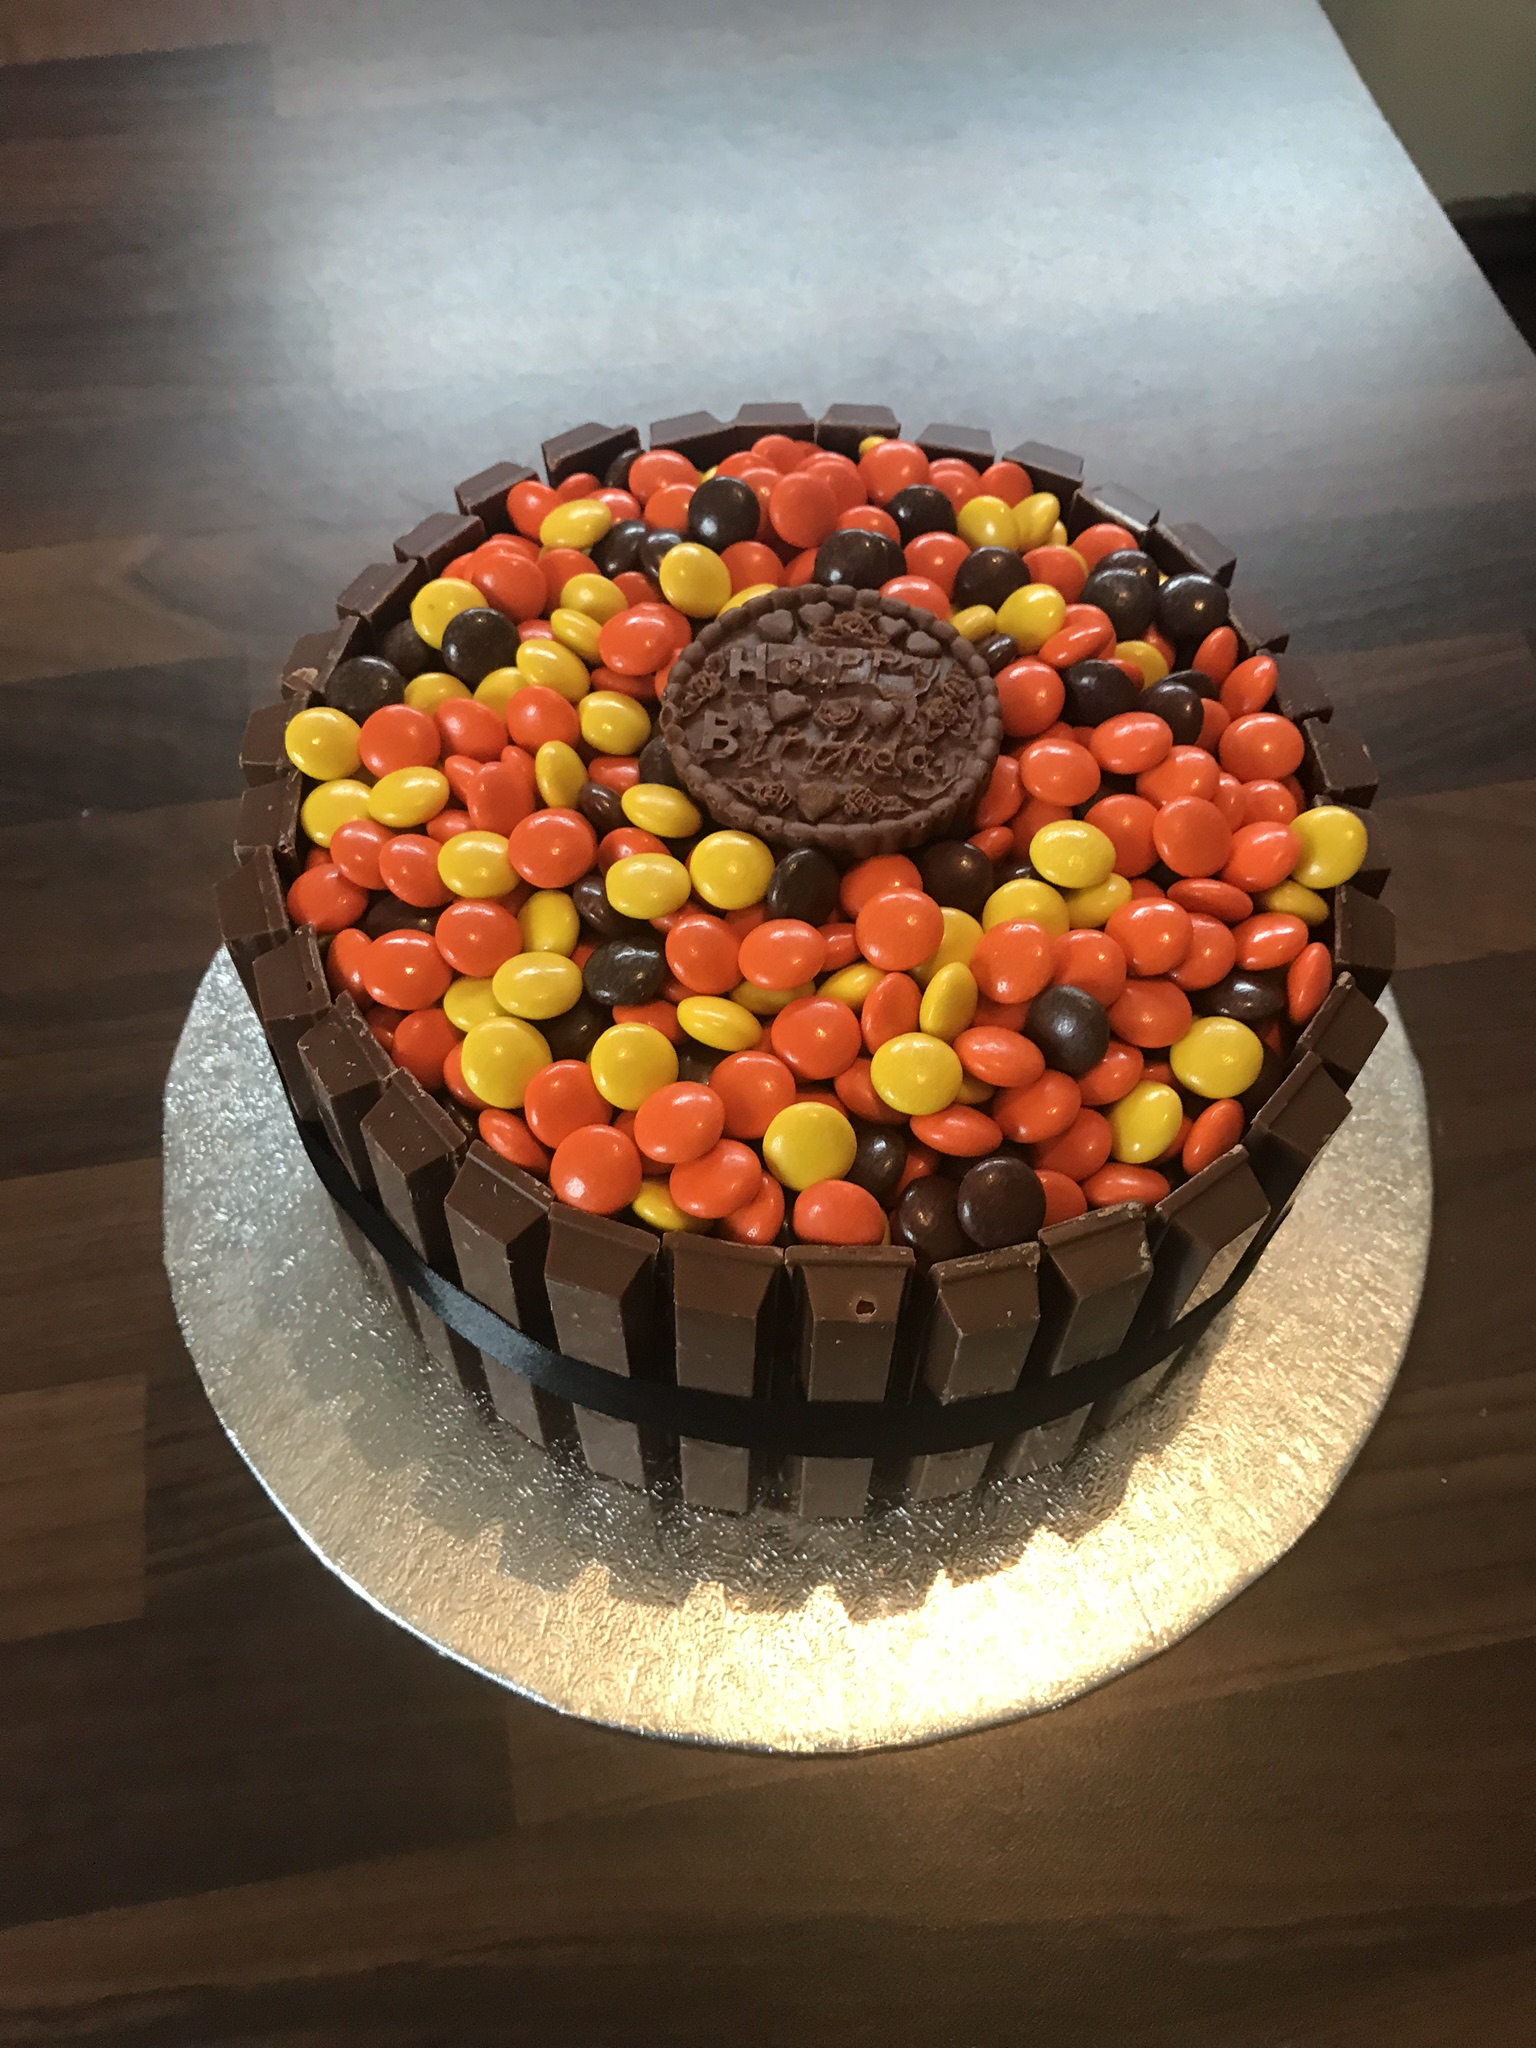 Chocolate birthday cake loaded with Reece's chocolate pieces